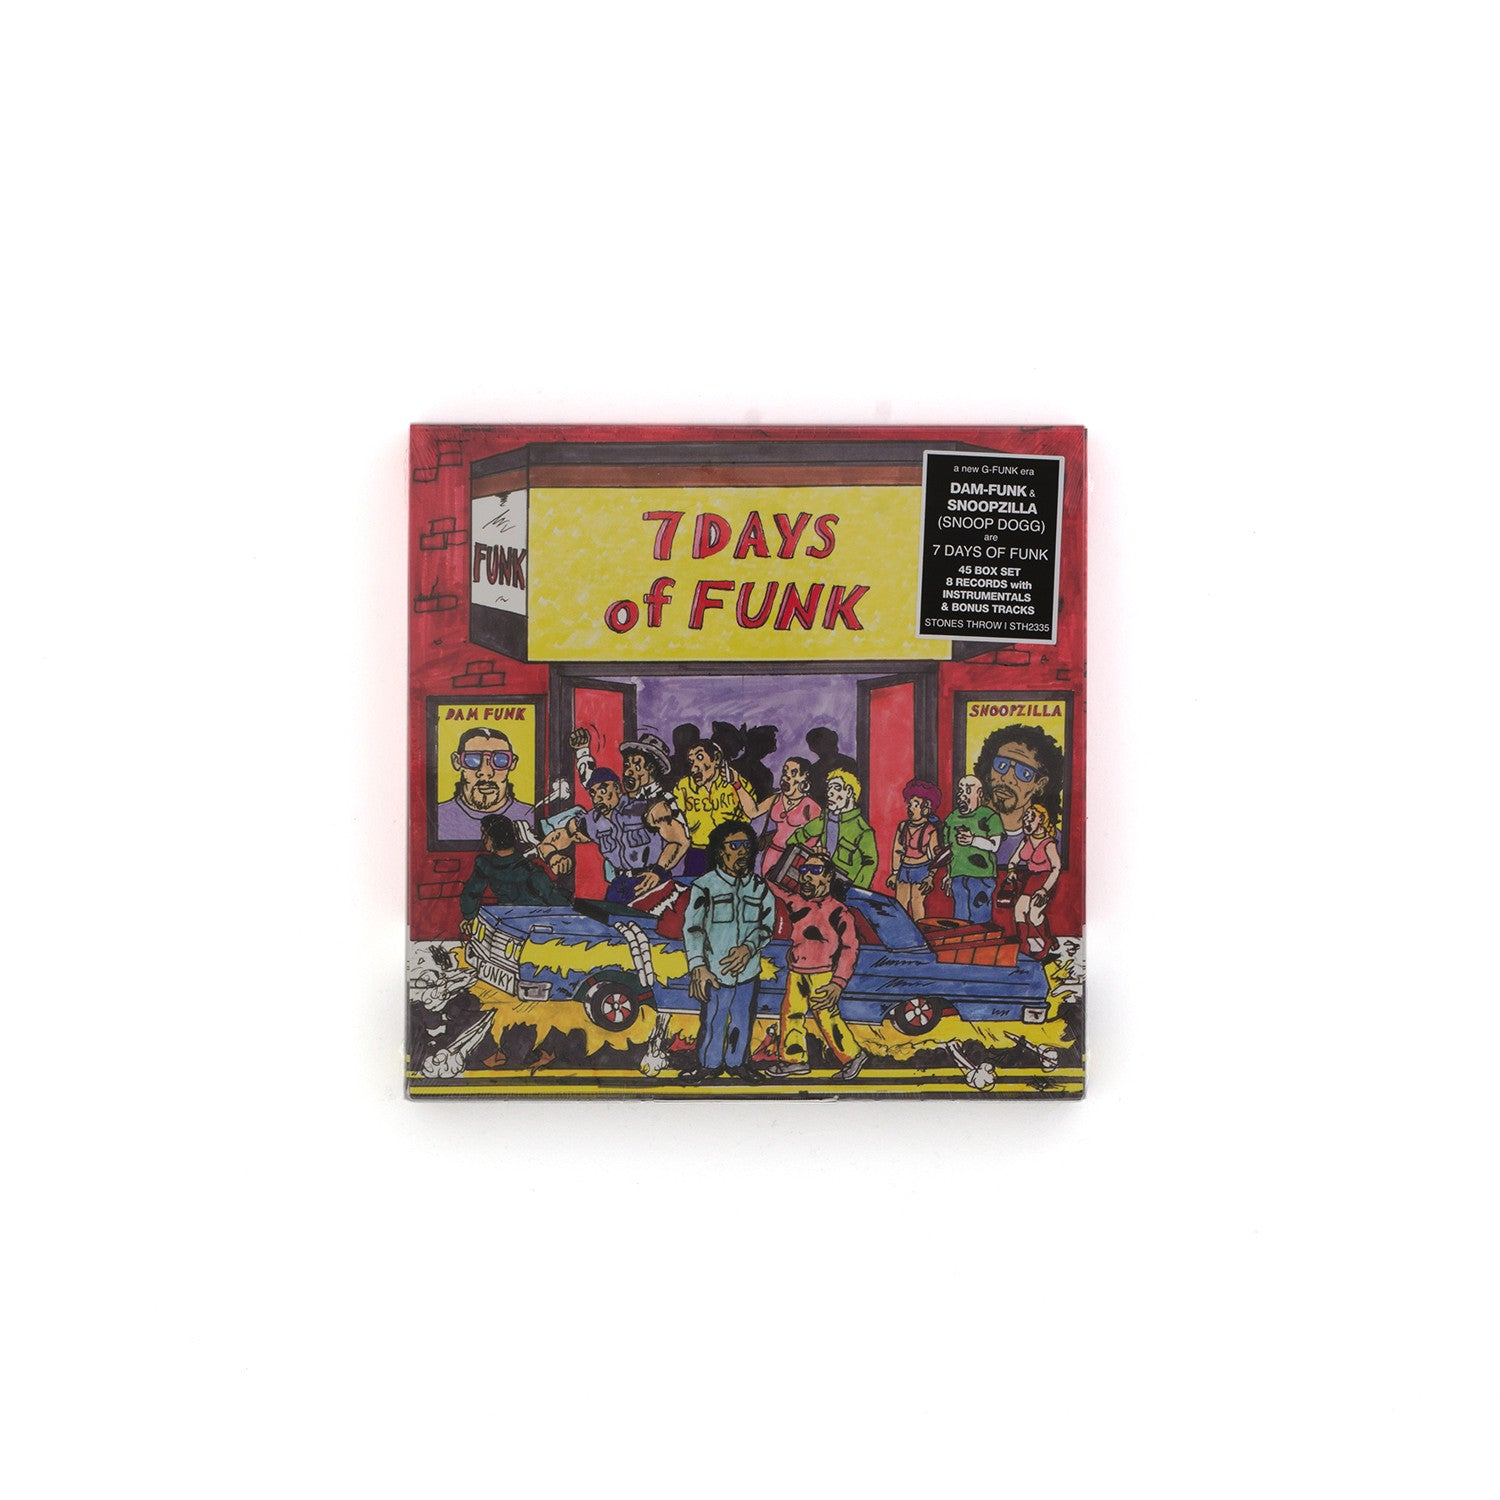 "Dam-Funk & Snoopzilla ""7 Days Of Funk"" 45 Box Set - Concrete"